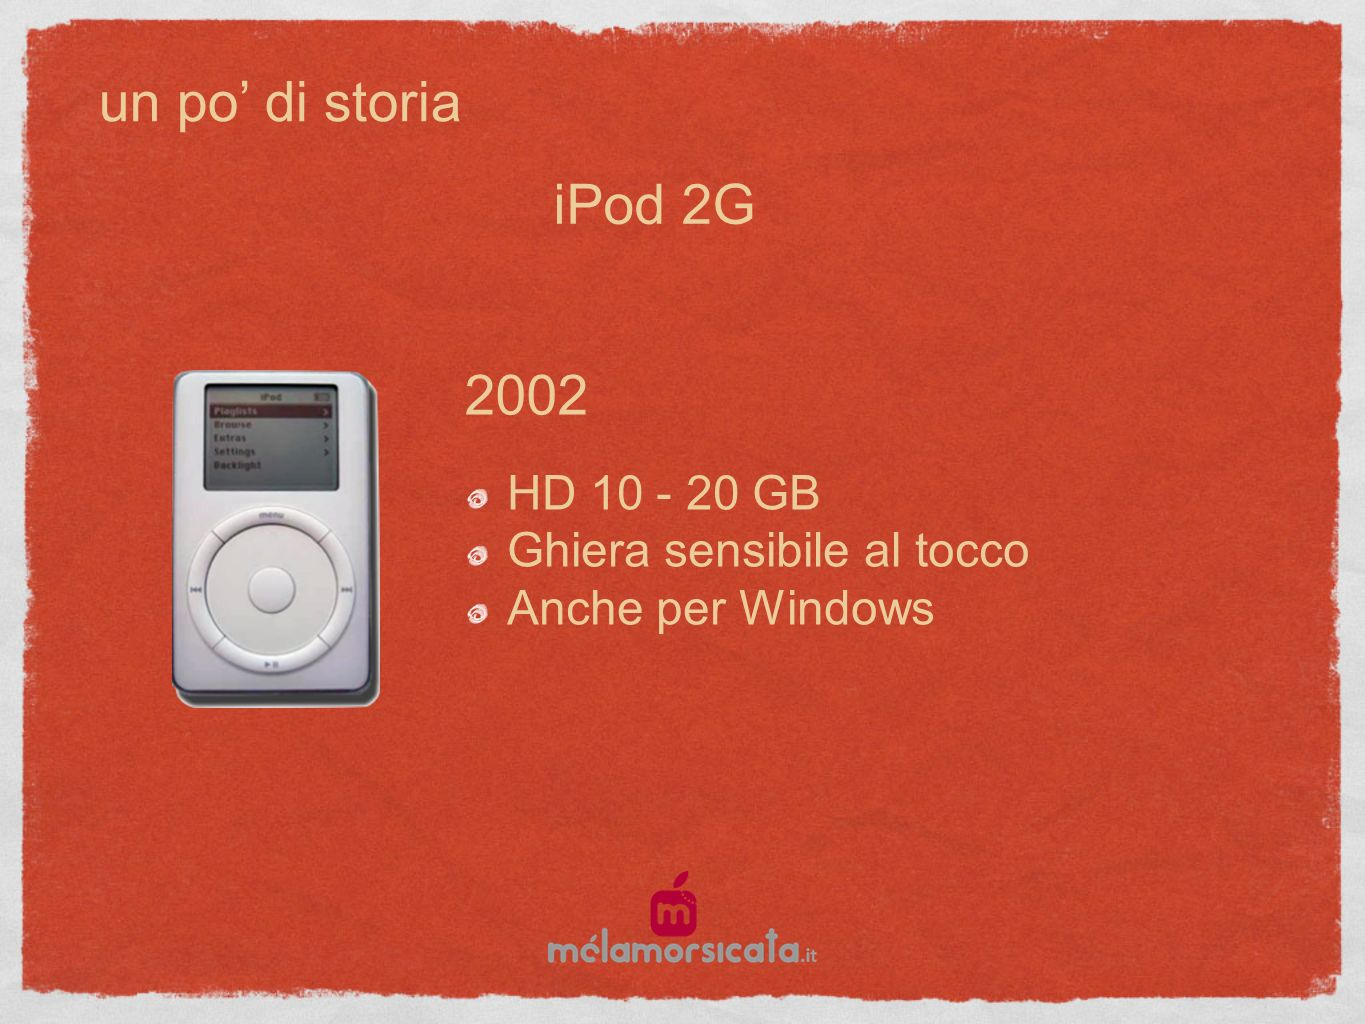 un po di storia 2002 HD 10 - 20 GB Ghiera sensibile al tocco Anche per Windows iPod 2G